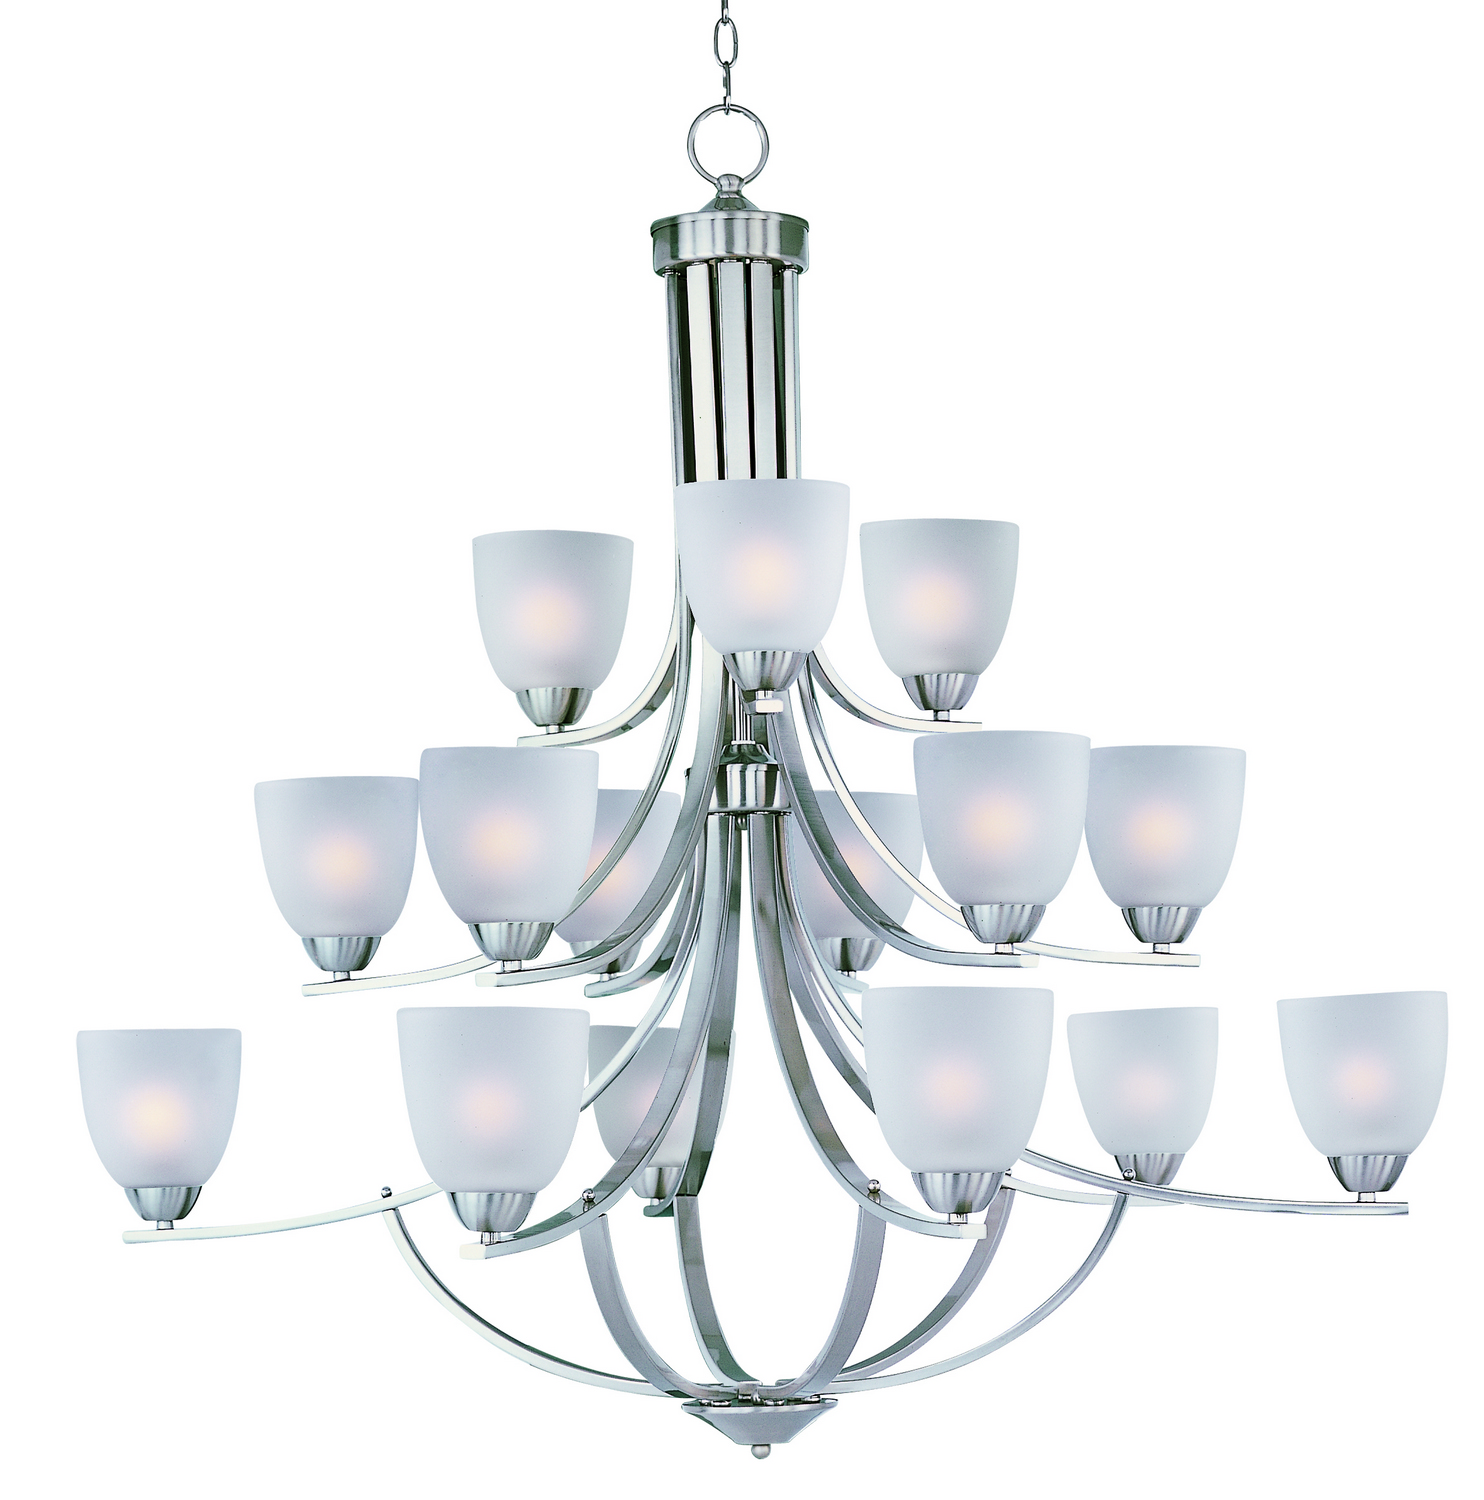 15 Light Chandelier from the Axis collection by Maxim 11228FTSN